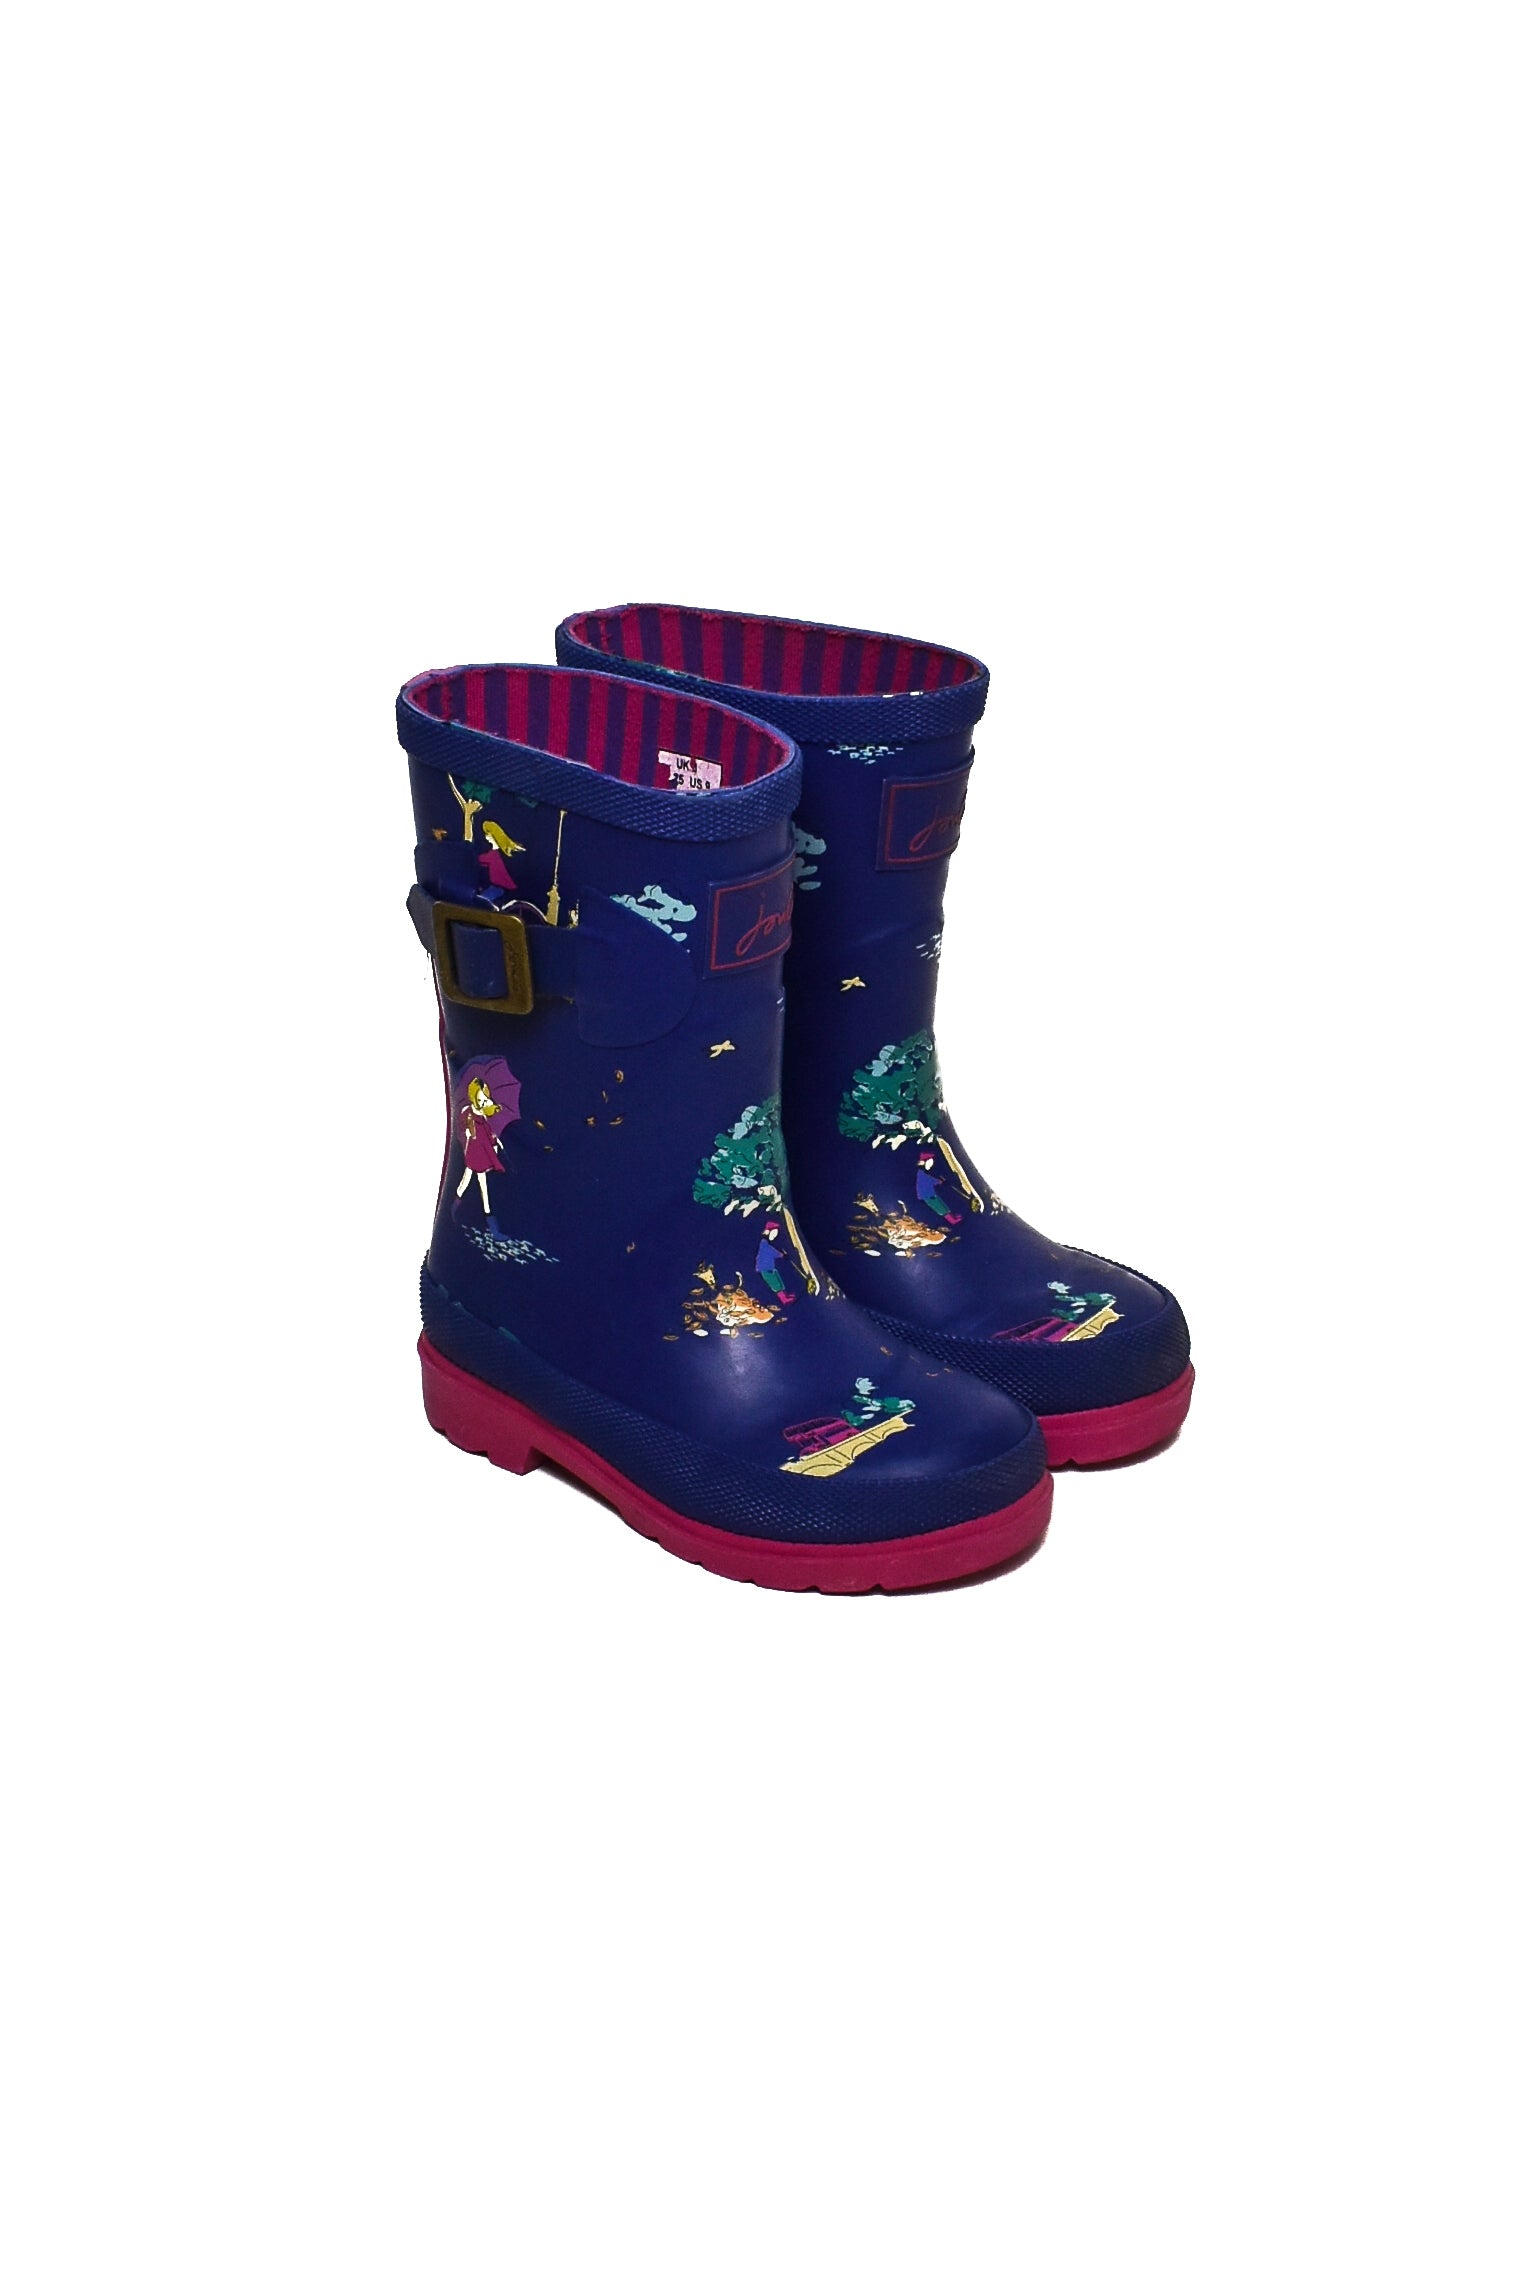 10007875 Joules Kids~Rain Boots 3T (EU 25) at Retykle